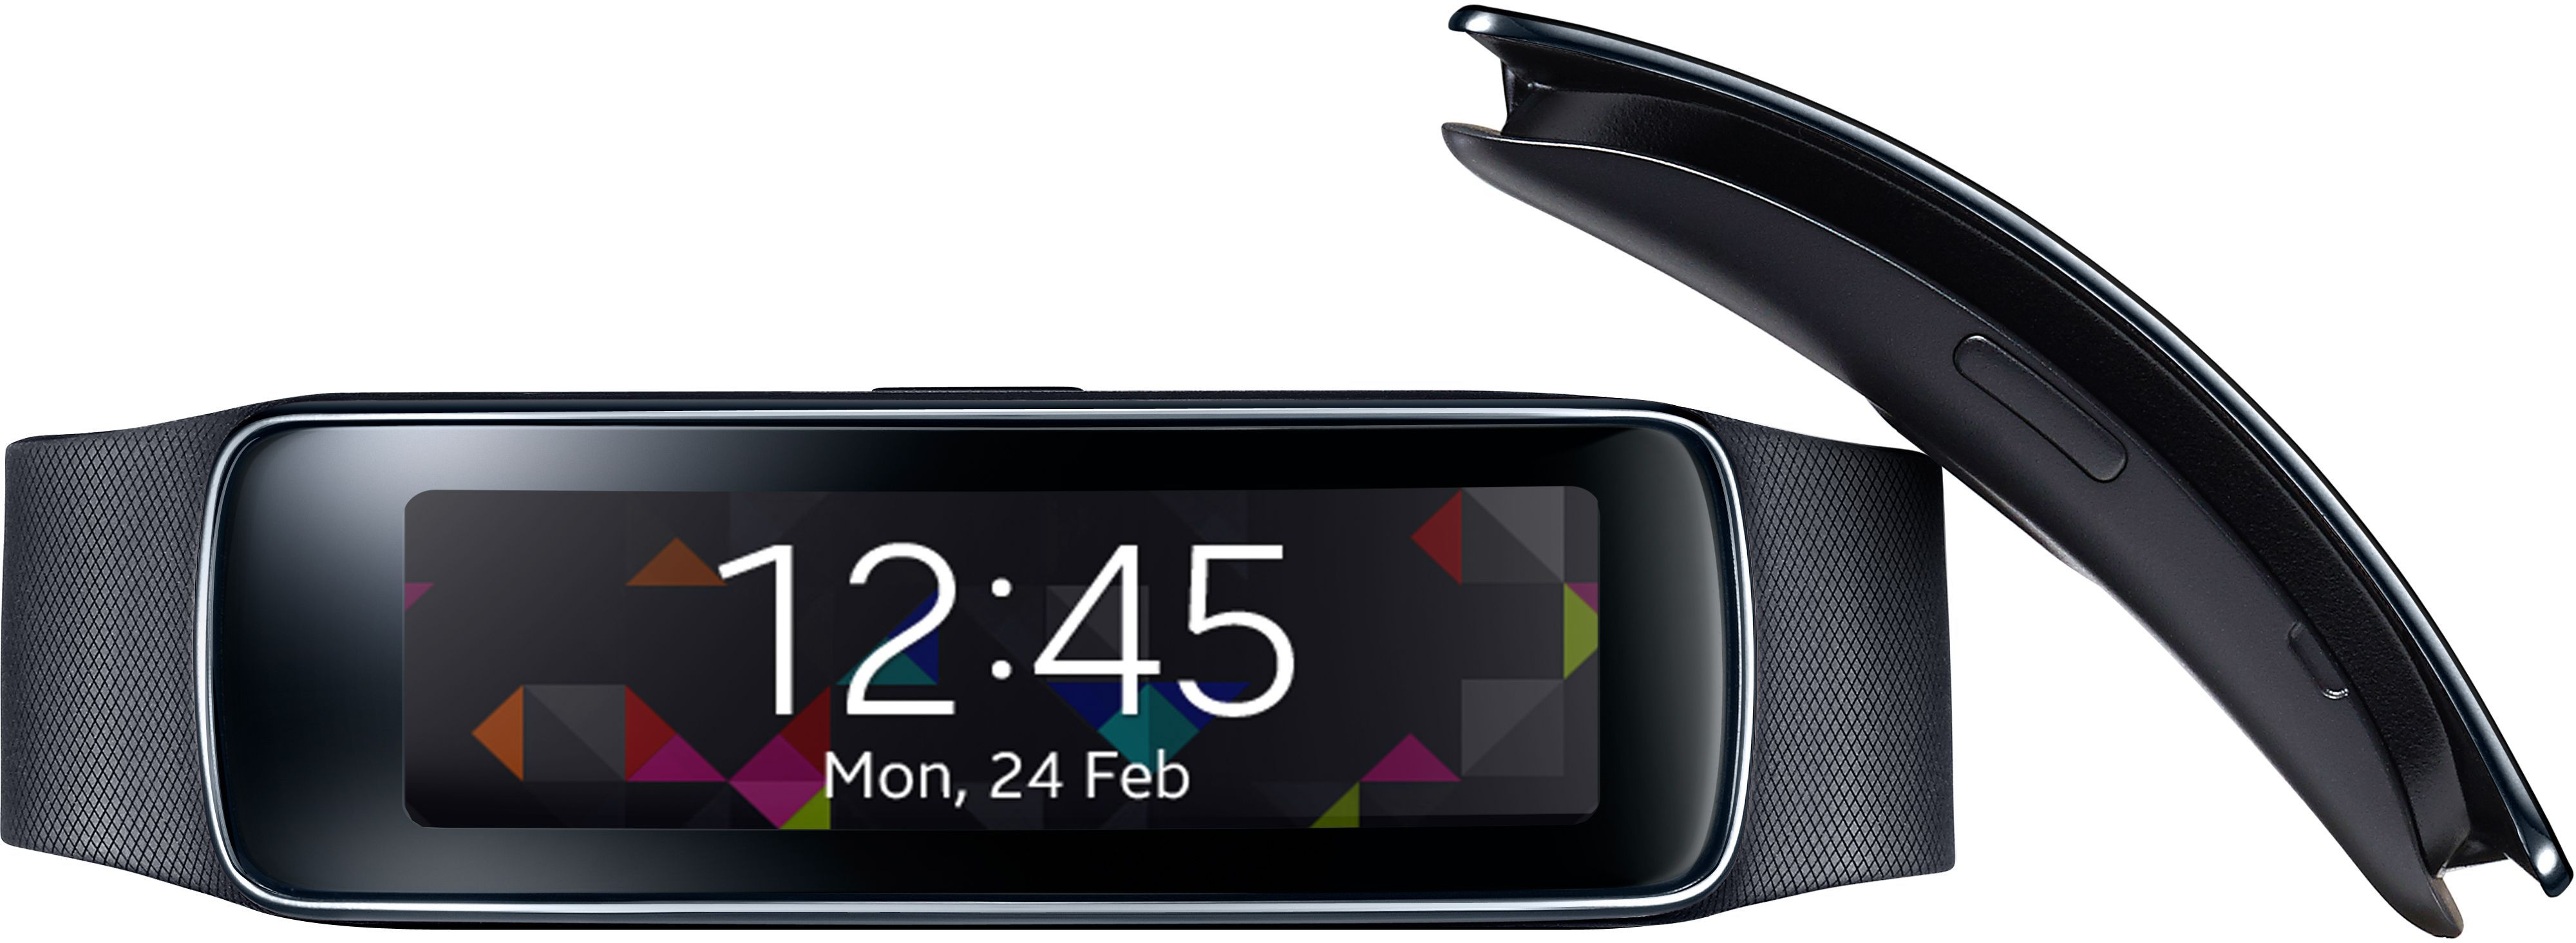 Curved Super AMOLED Touchscreen Display, Samsung